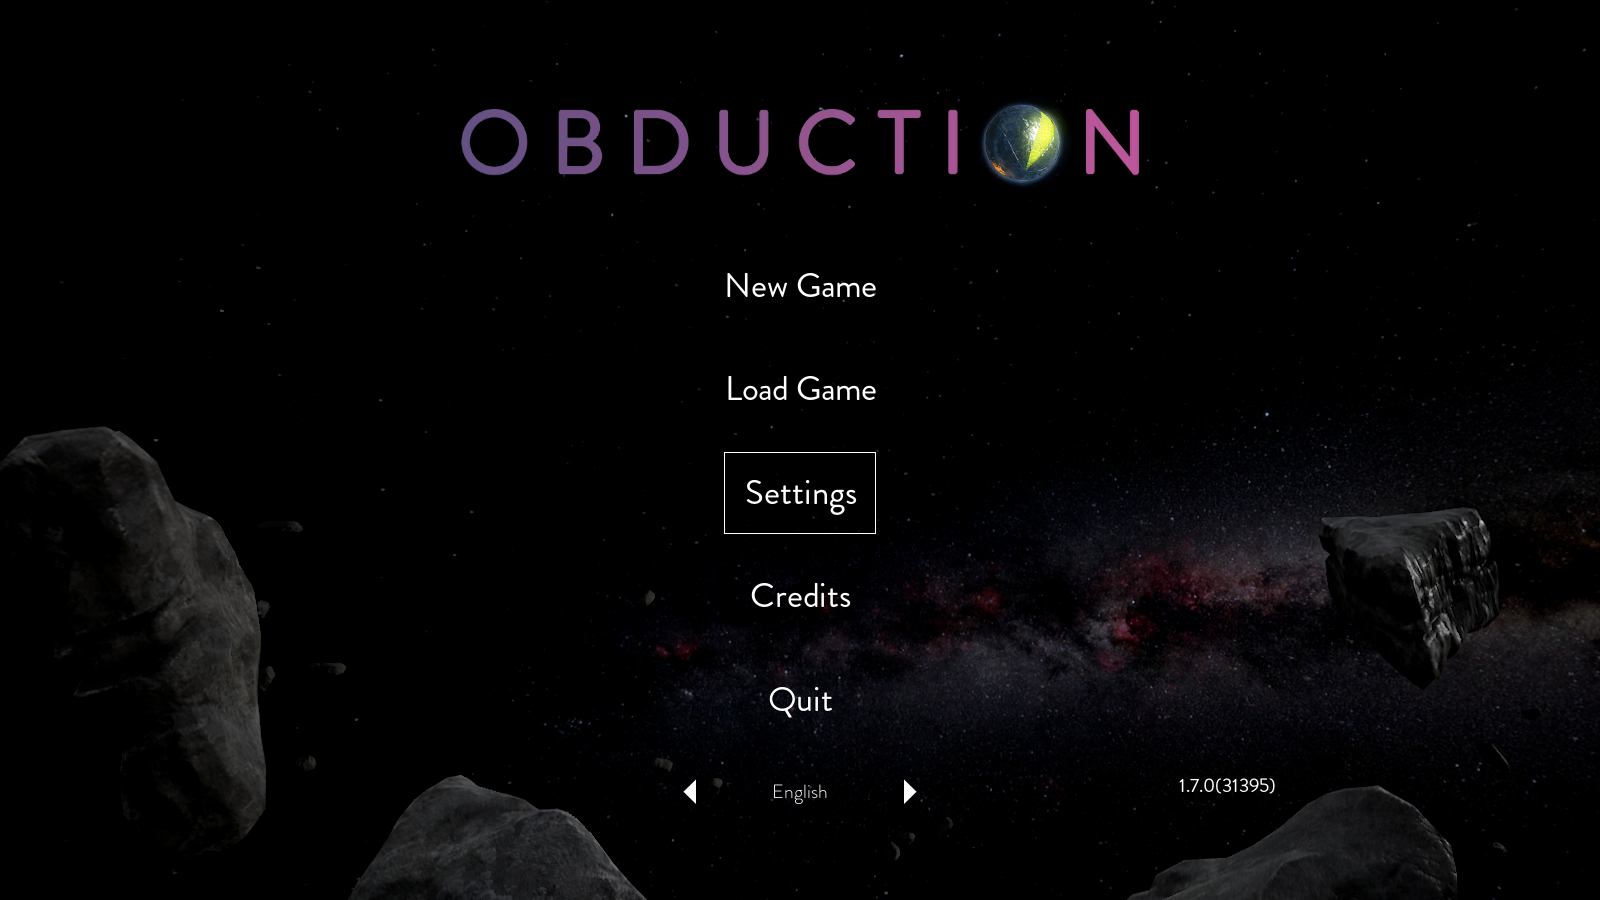 obduction28.png